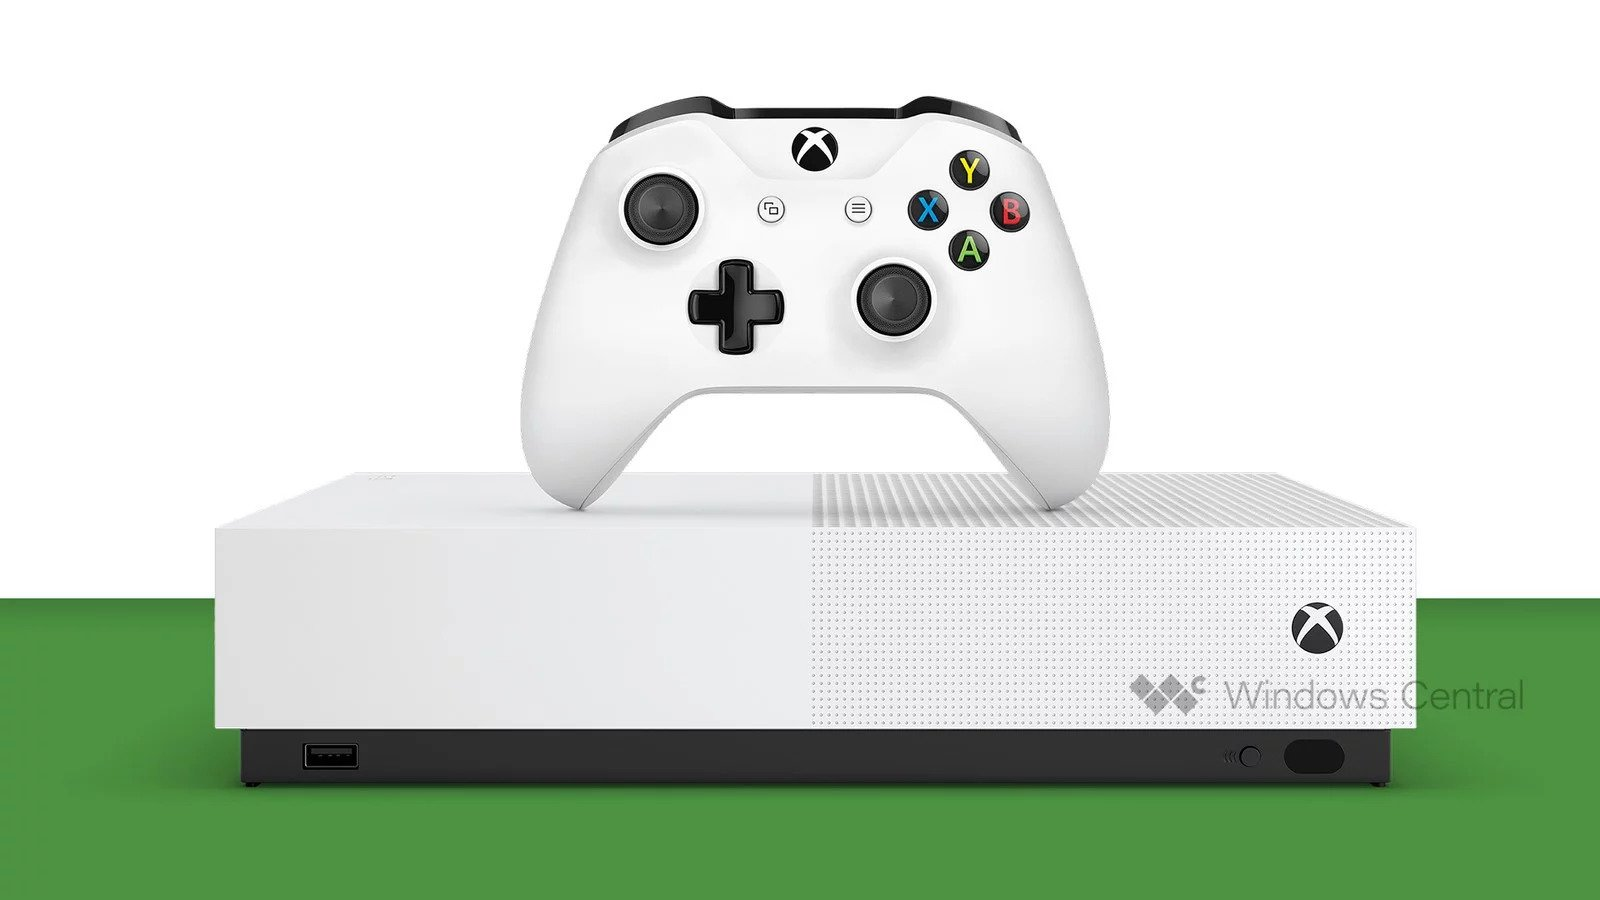 Xbox One S All-Digital Edition console release date leaked